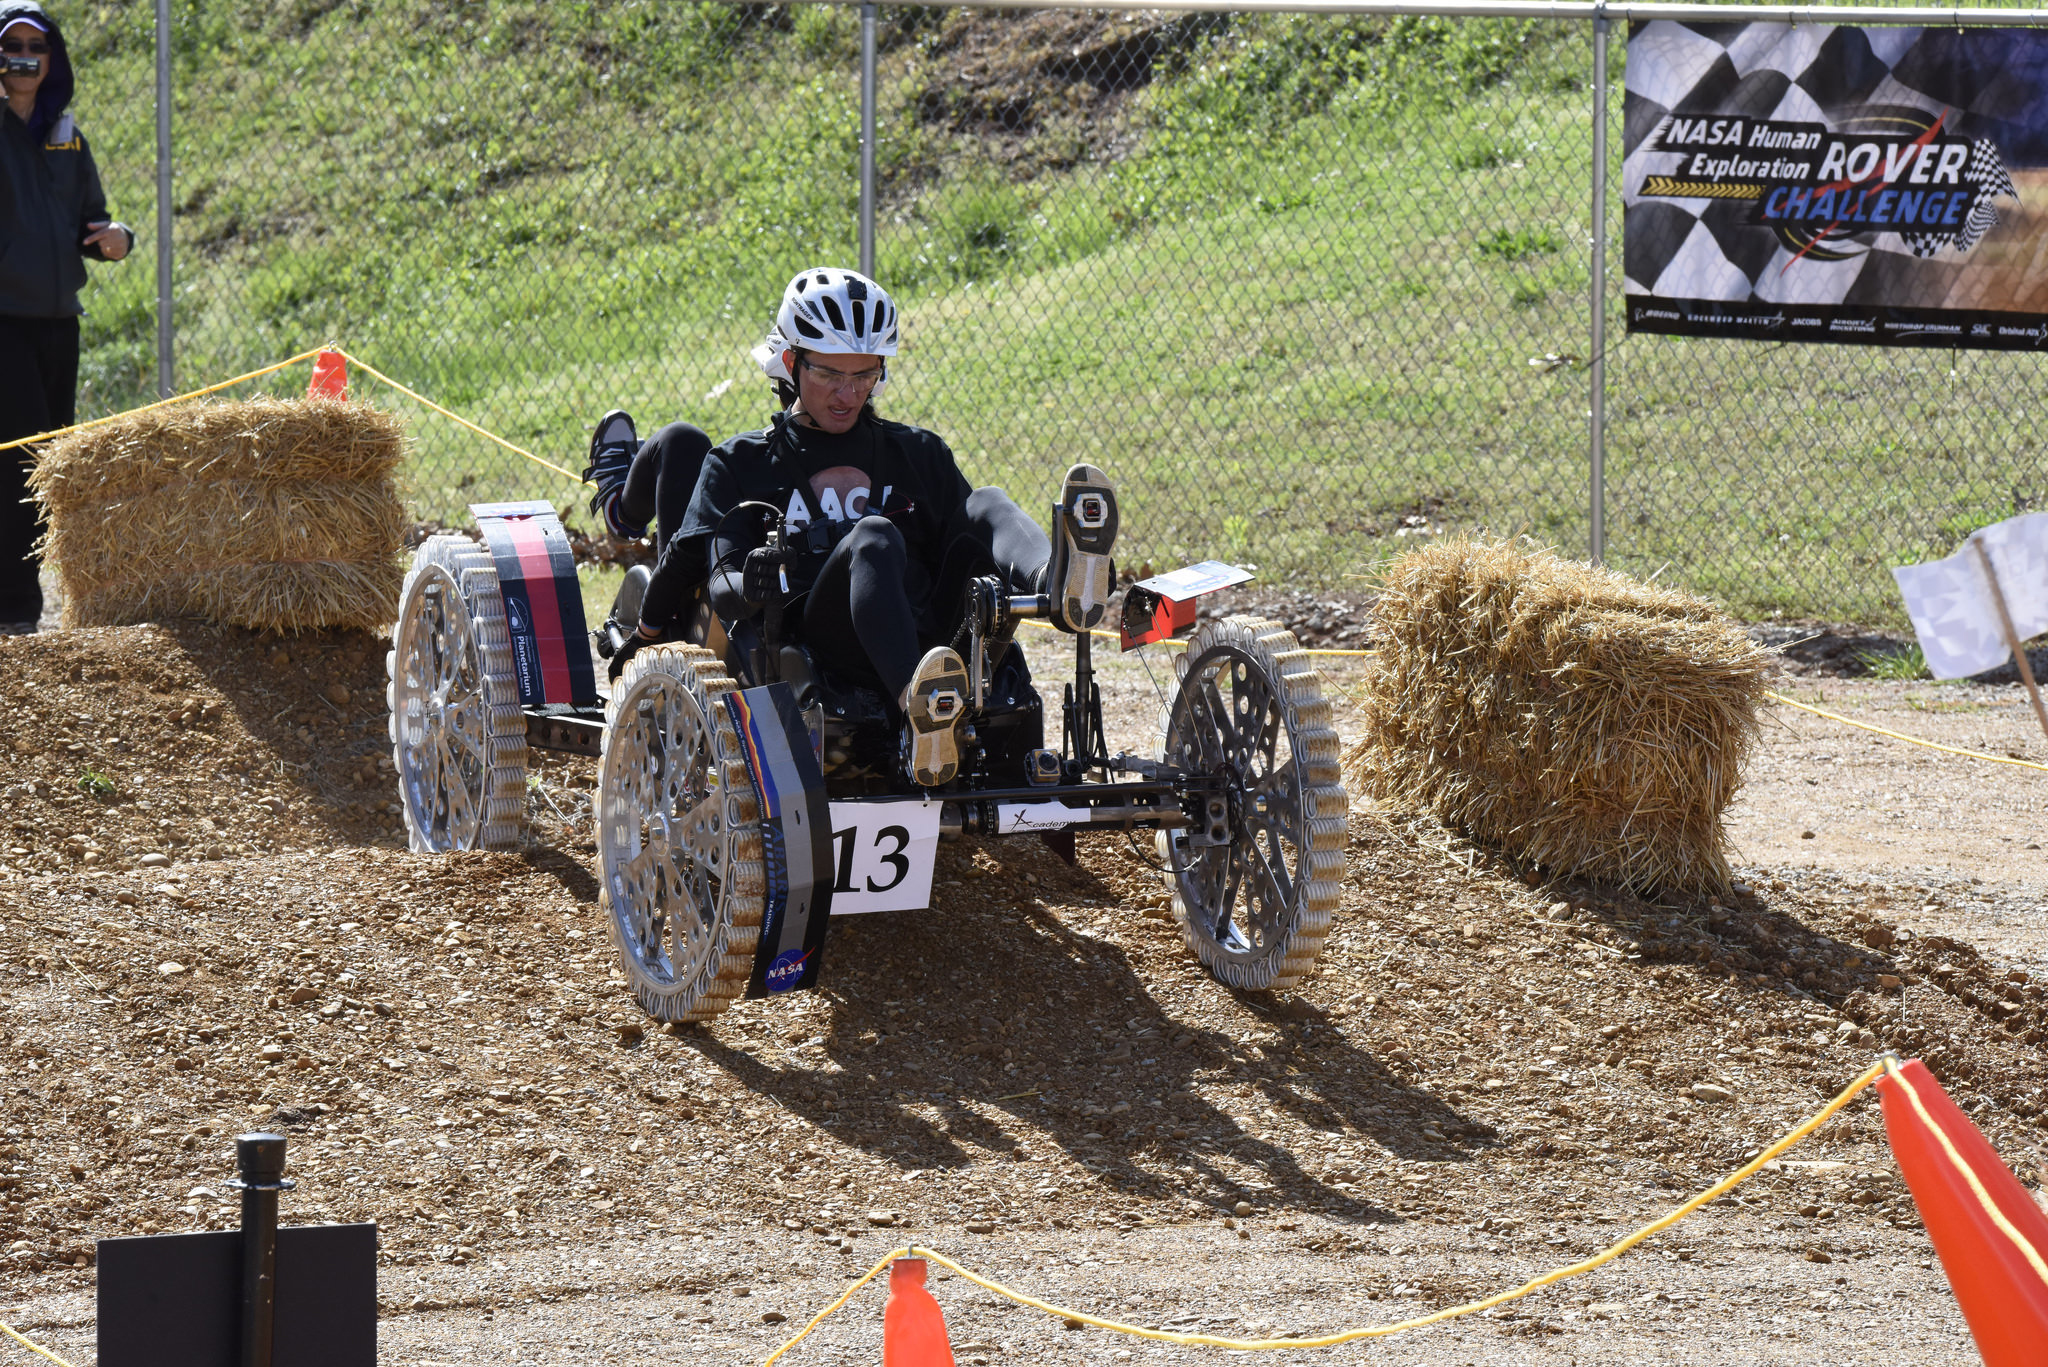 Nasa To Host 2017 Human Exploration Rover Challenge Nasa